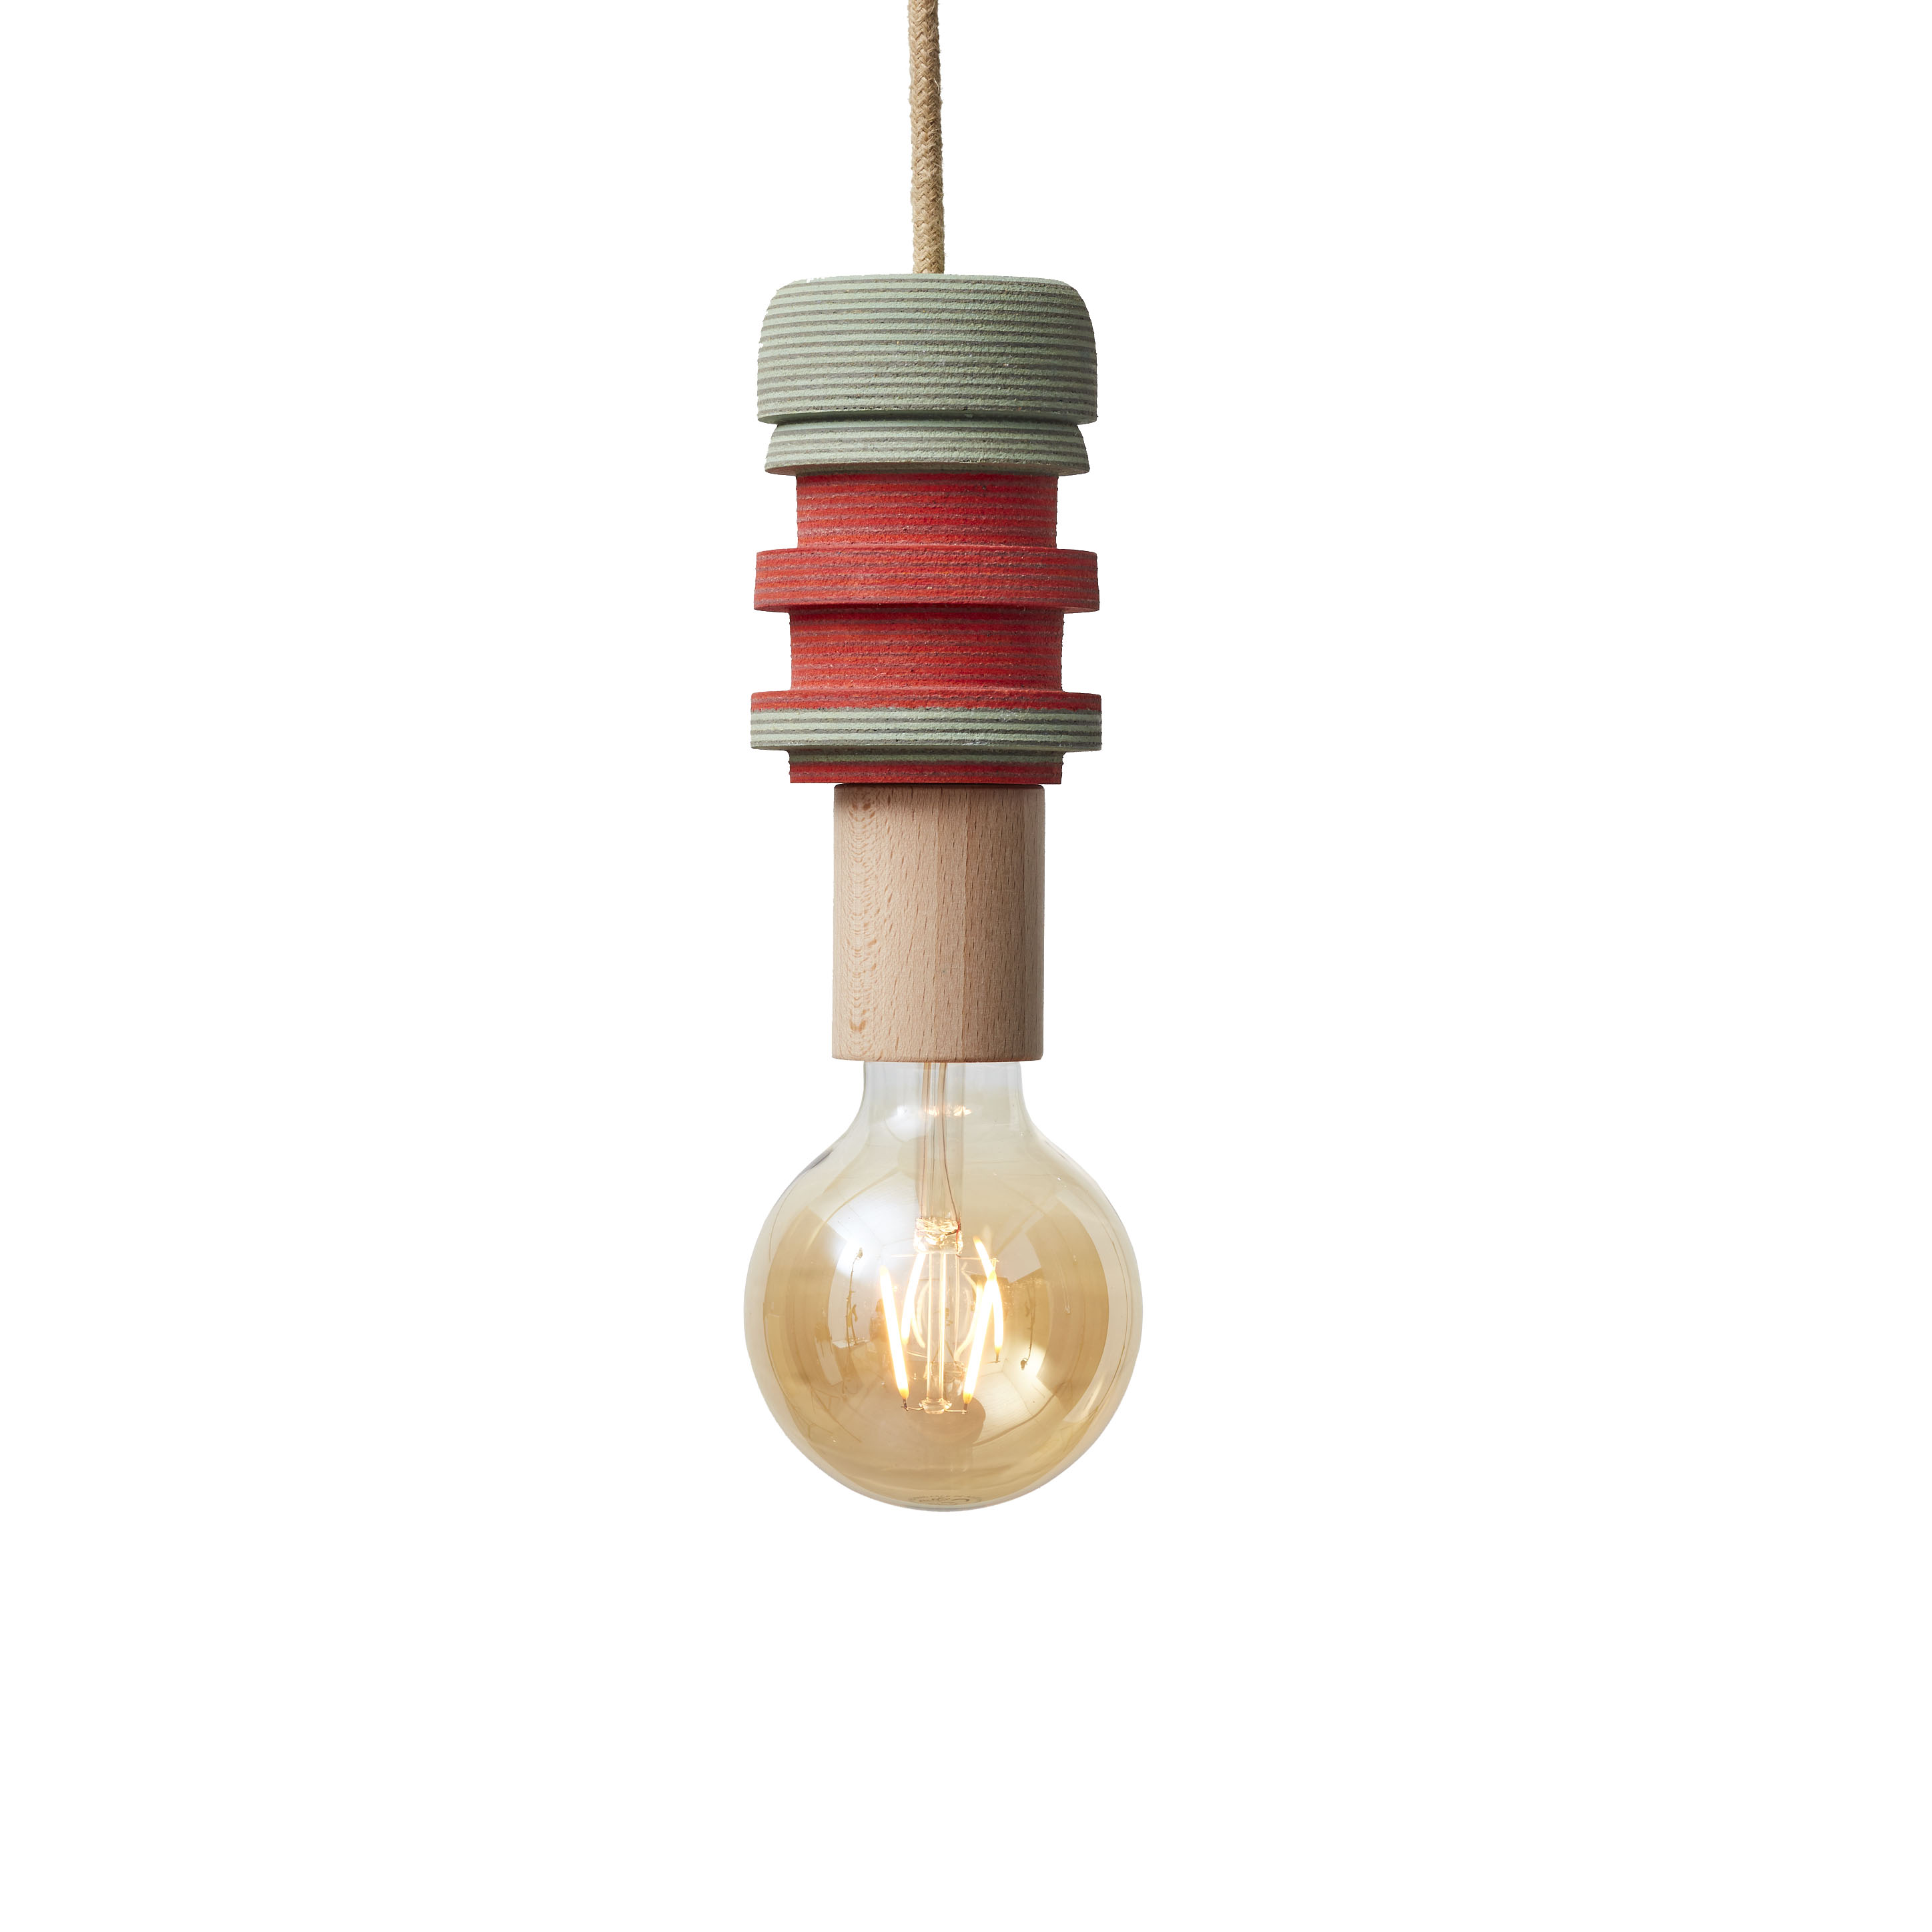 Lin pendant 3 - The LIN pendant lights have been turned by hand on a lathe from blocks of laminated squares of Linoleum flooring. These playful and subtly vibrant pendants have been finished with a natural jute covered lighting cord, a solid wood E27 fitting bulb holder and a standard 3 pin plug. Statement yet welcoming lighting to brighten up interior or commercial spaces.  | Matter of Stuff